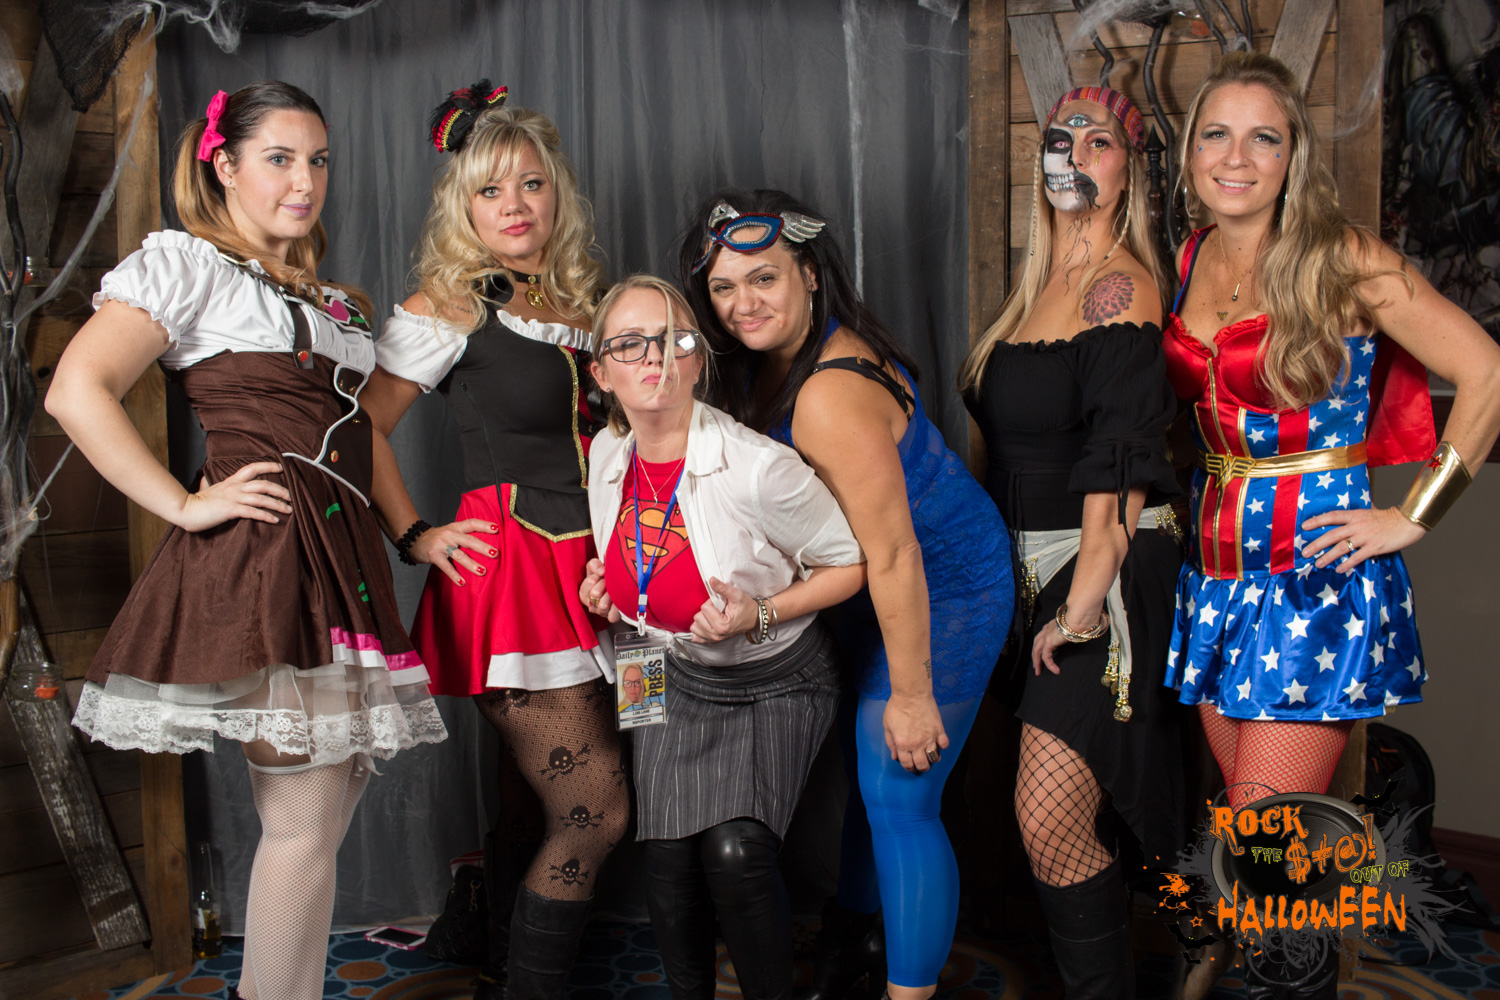 Halloween-PhotoBooth-030-6758